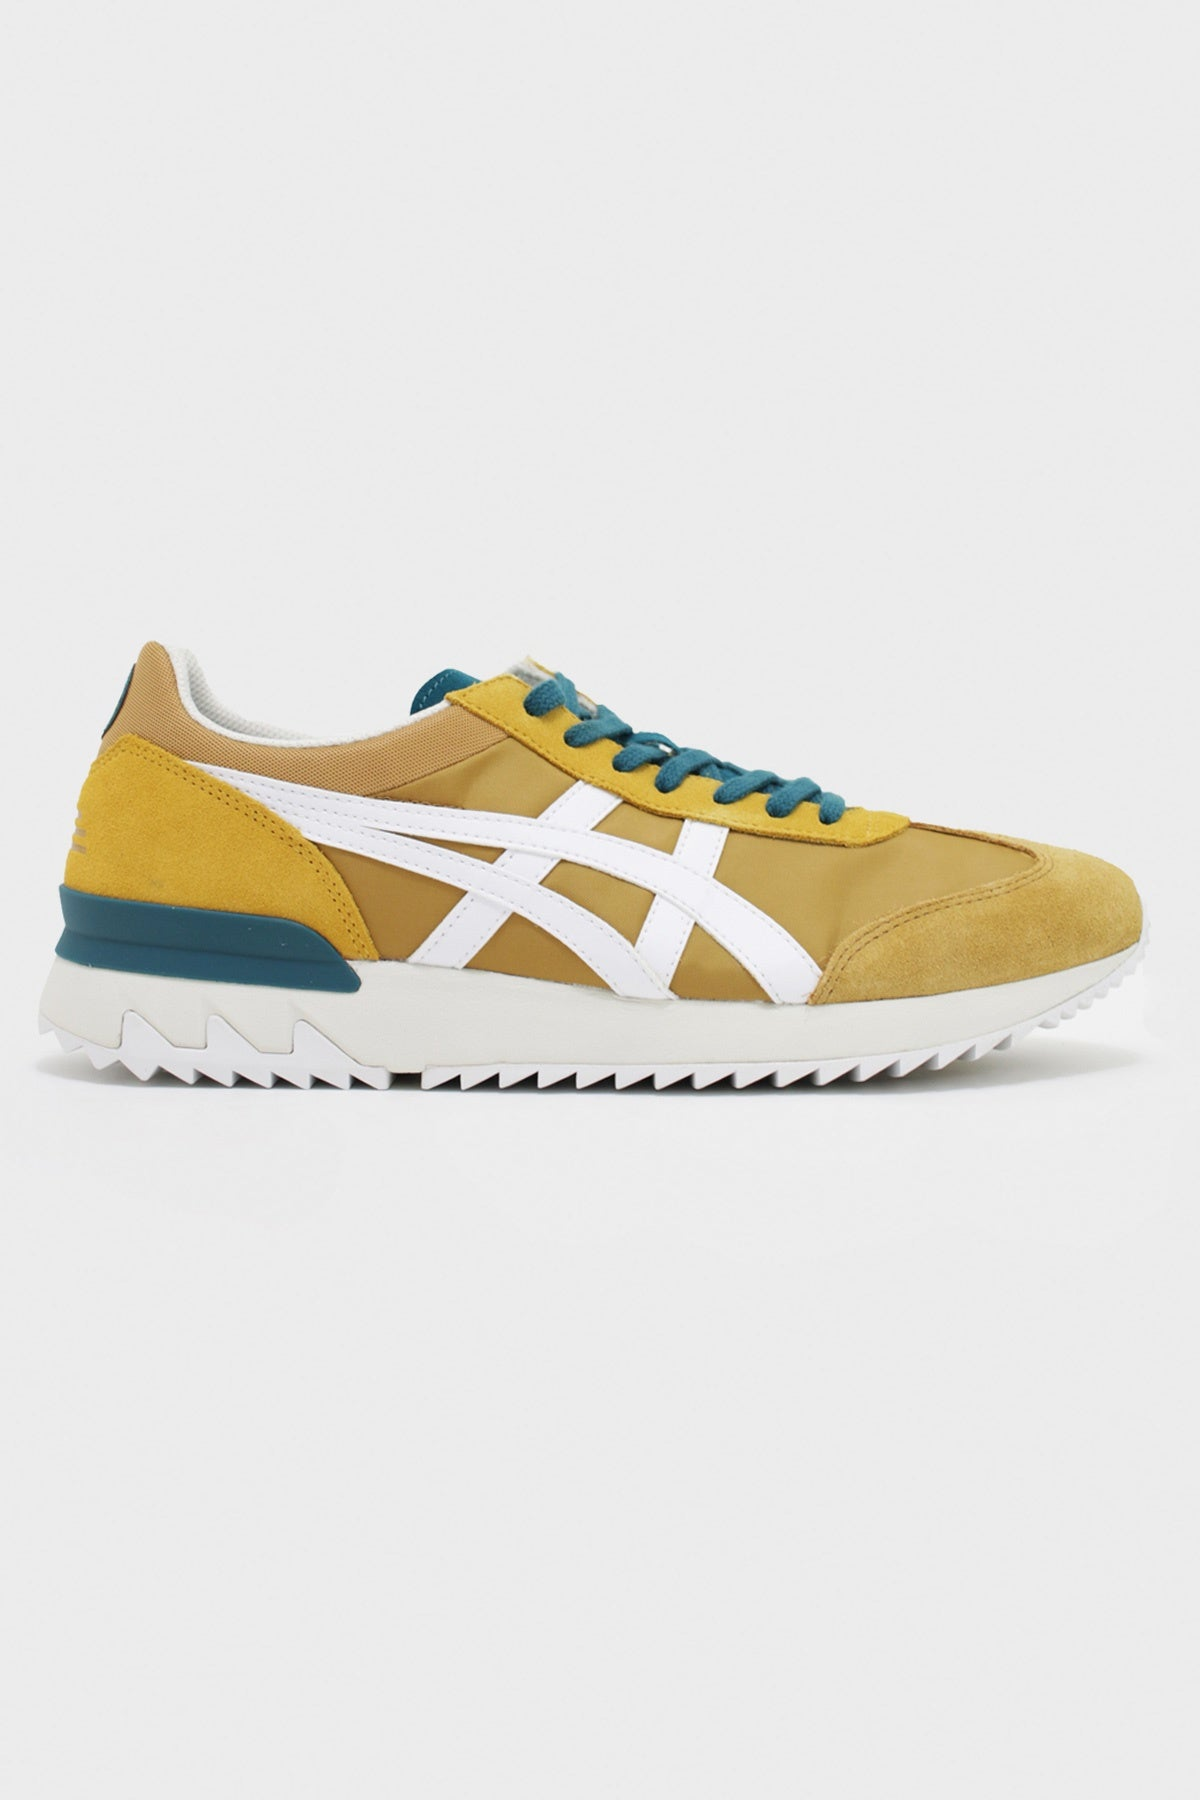 Onitsuka Tiger - California 78 EX - Wood Thrush/White - Canoe Club